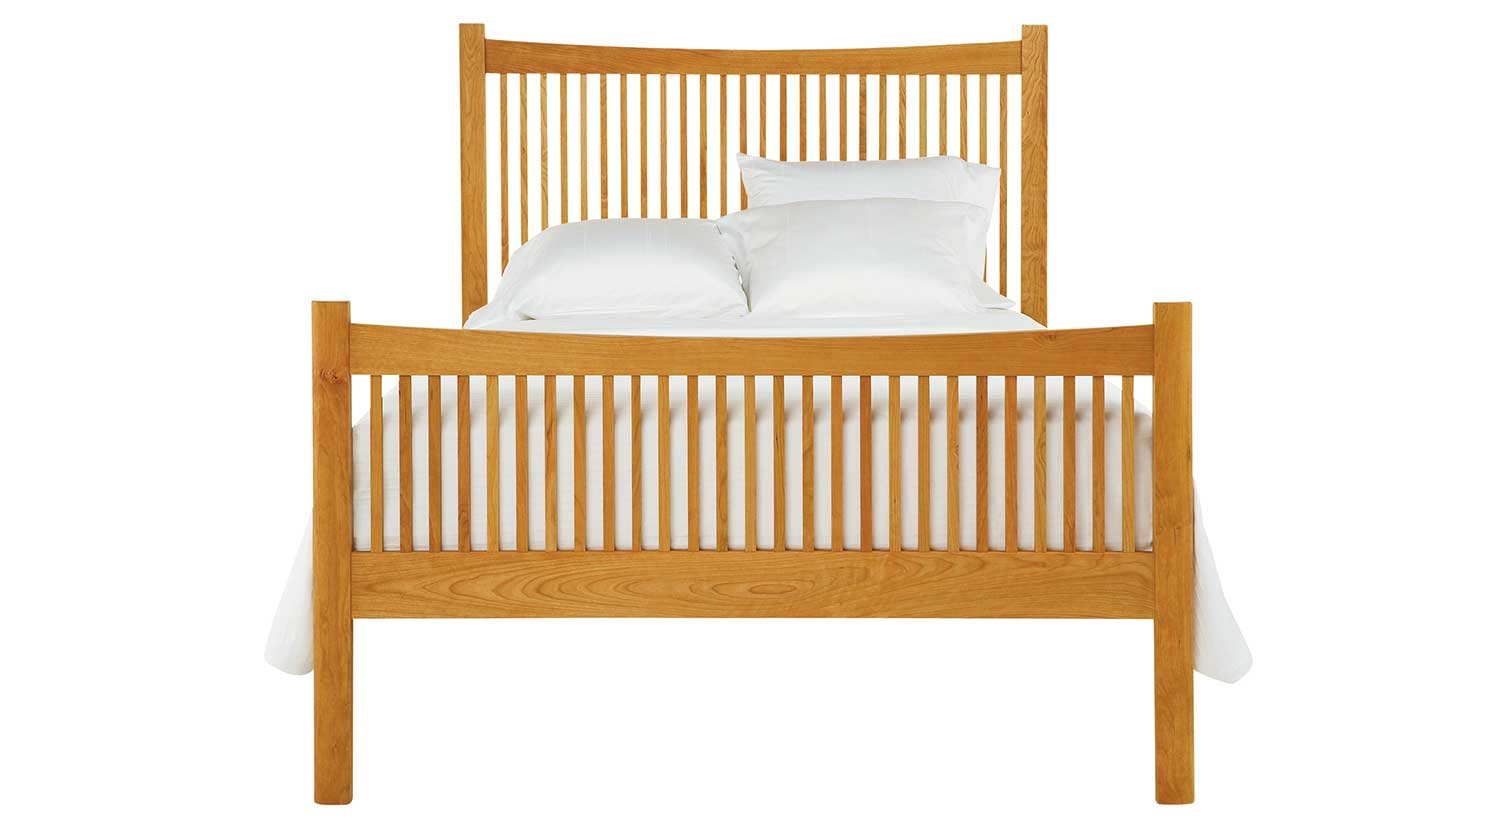 Circle Furniture - Heartwood Bed